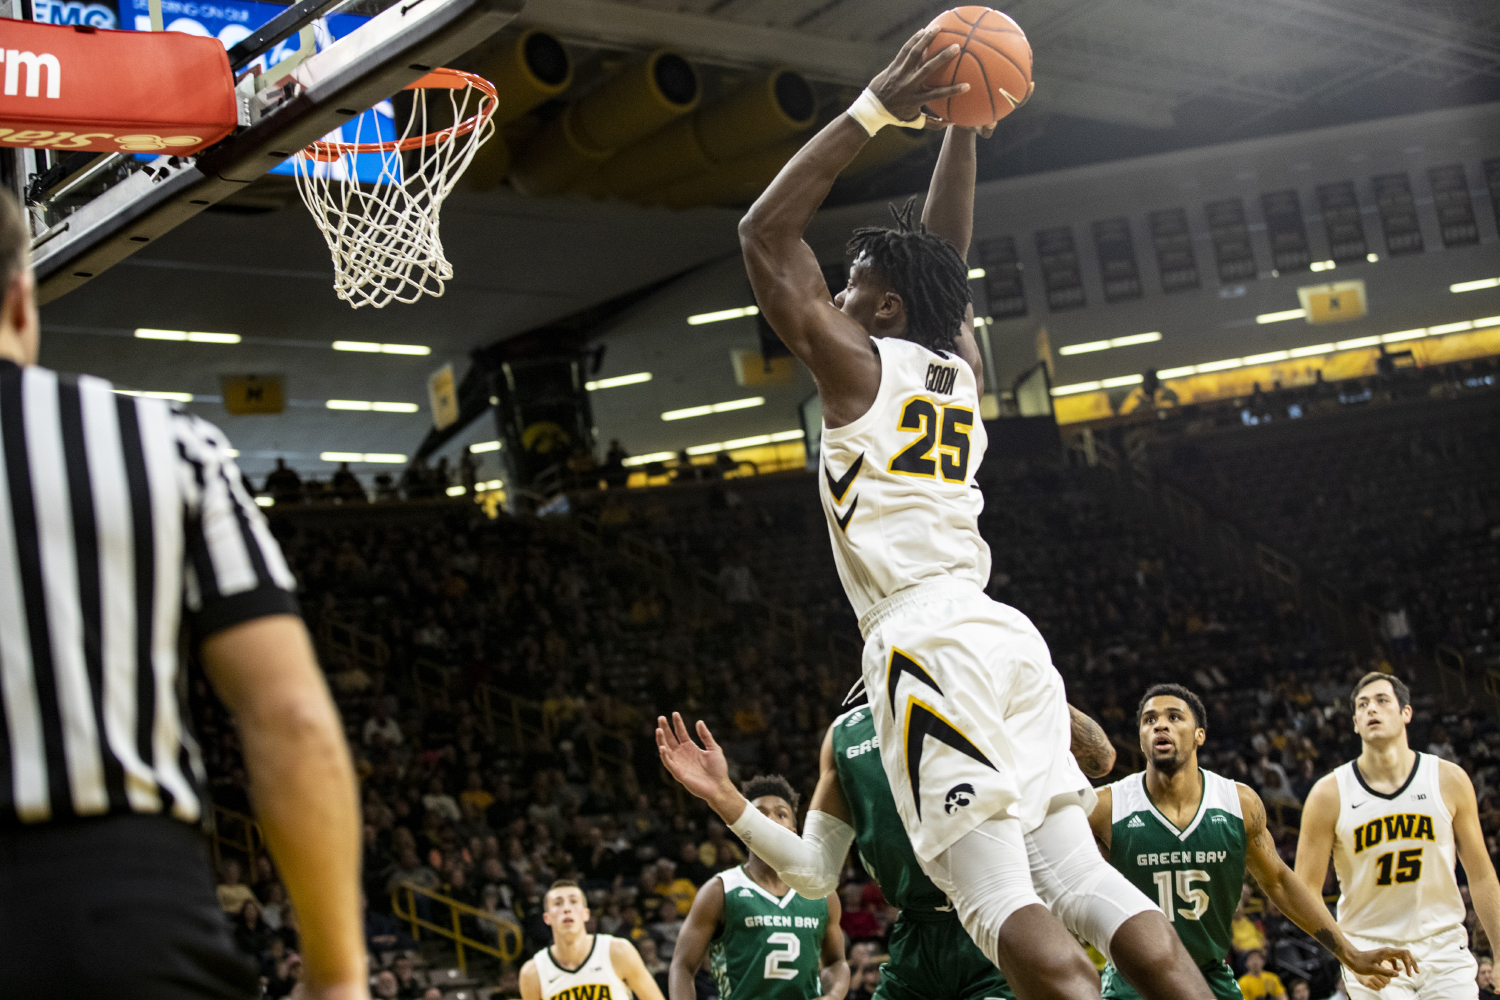 Iowa's Tyler Cook dunks the ball mid-way through the second half during the Iowa vs. Green Bay basketball game. The Hawkeyes defeated the Phoenix 93-83 at Carver-Hawkeye Arena on Sunday, Nov. 11, 2018. Iowa continues its undefeated record next week against No. 14 Oregon.